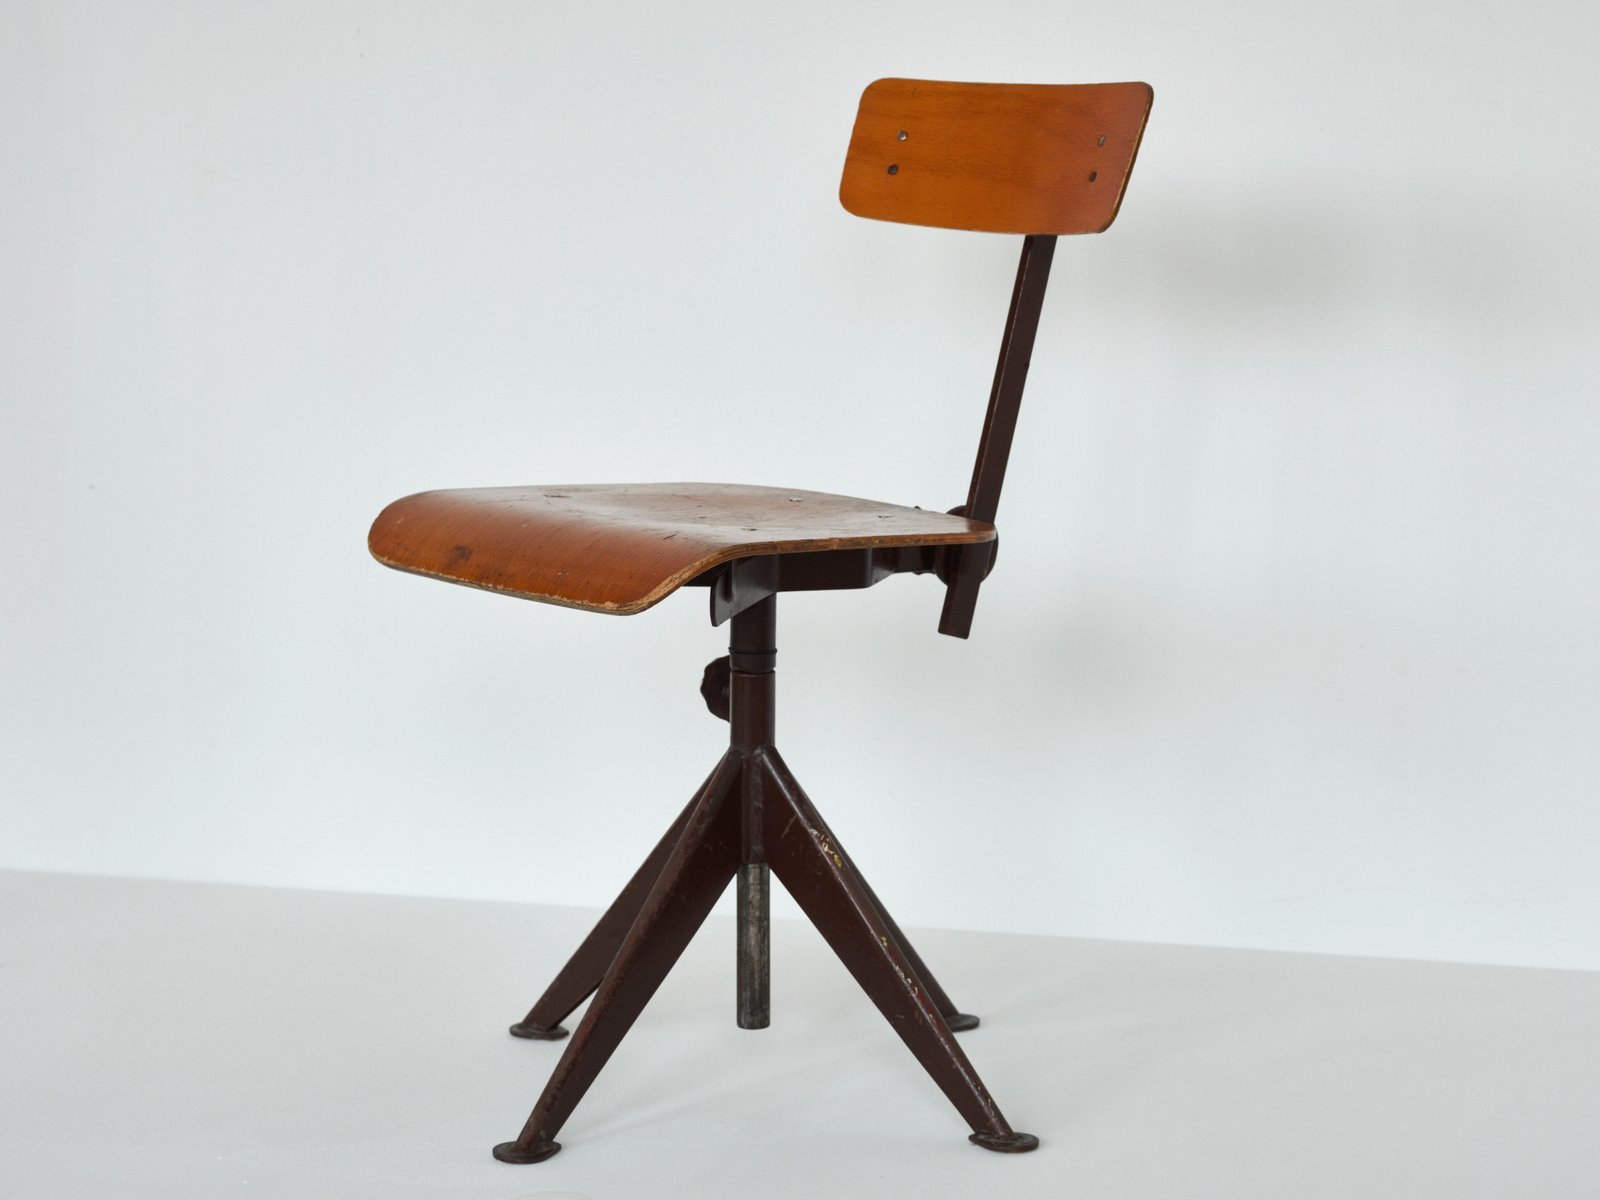 Vintage Swivel Work Chair By Jean Prouve